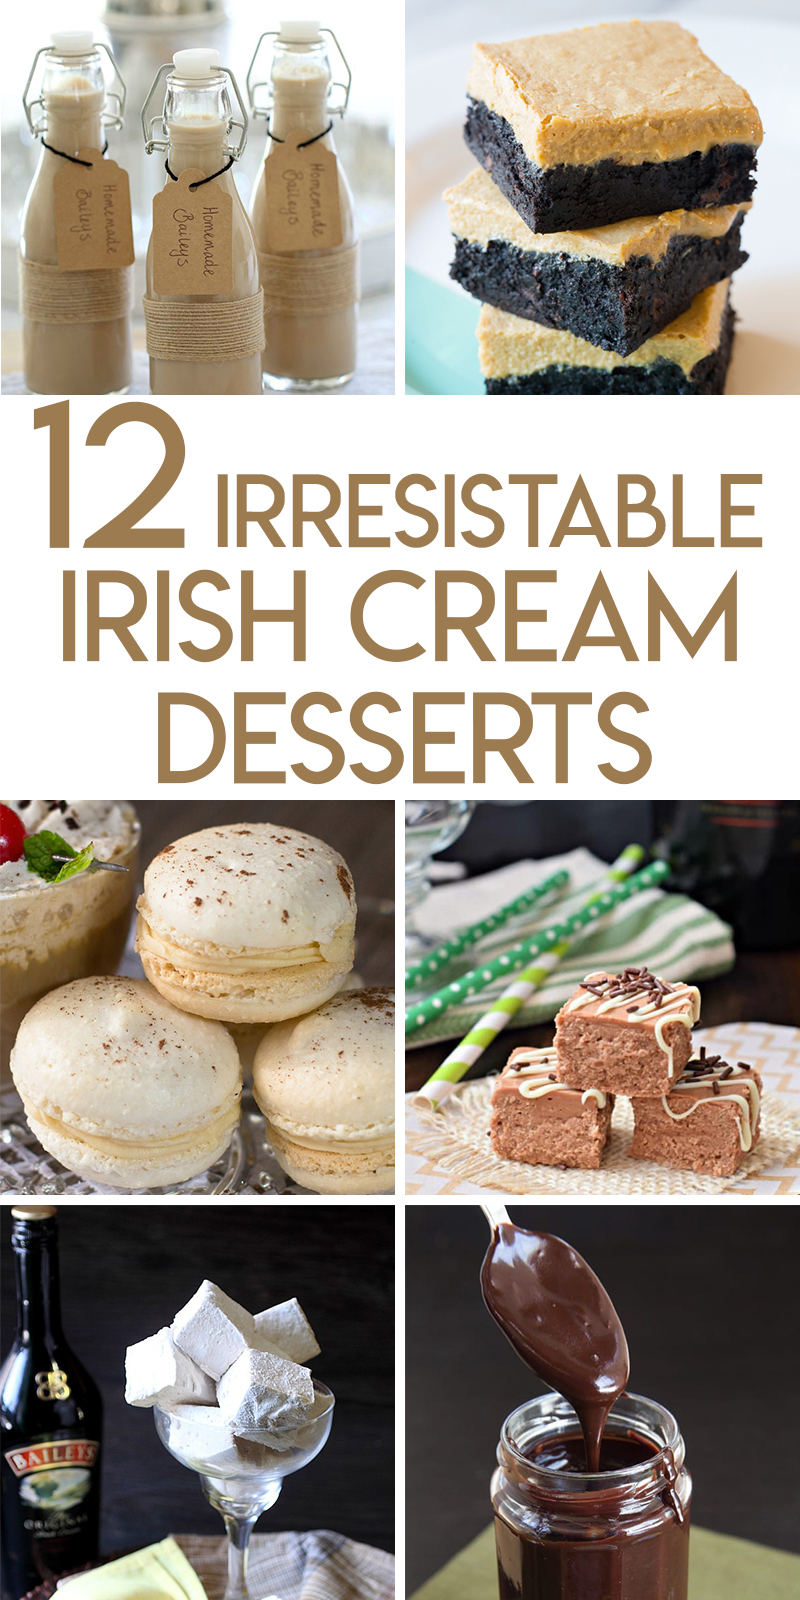 12 irresistible irish cream desserts